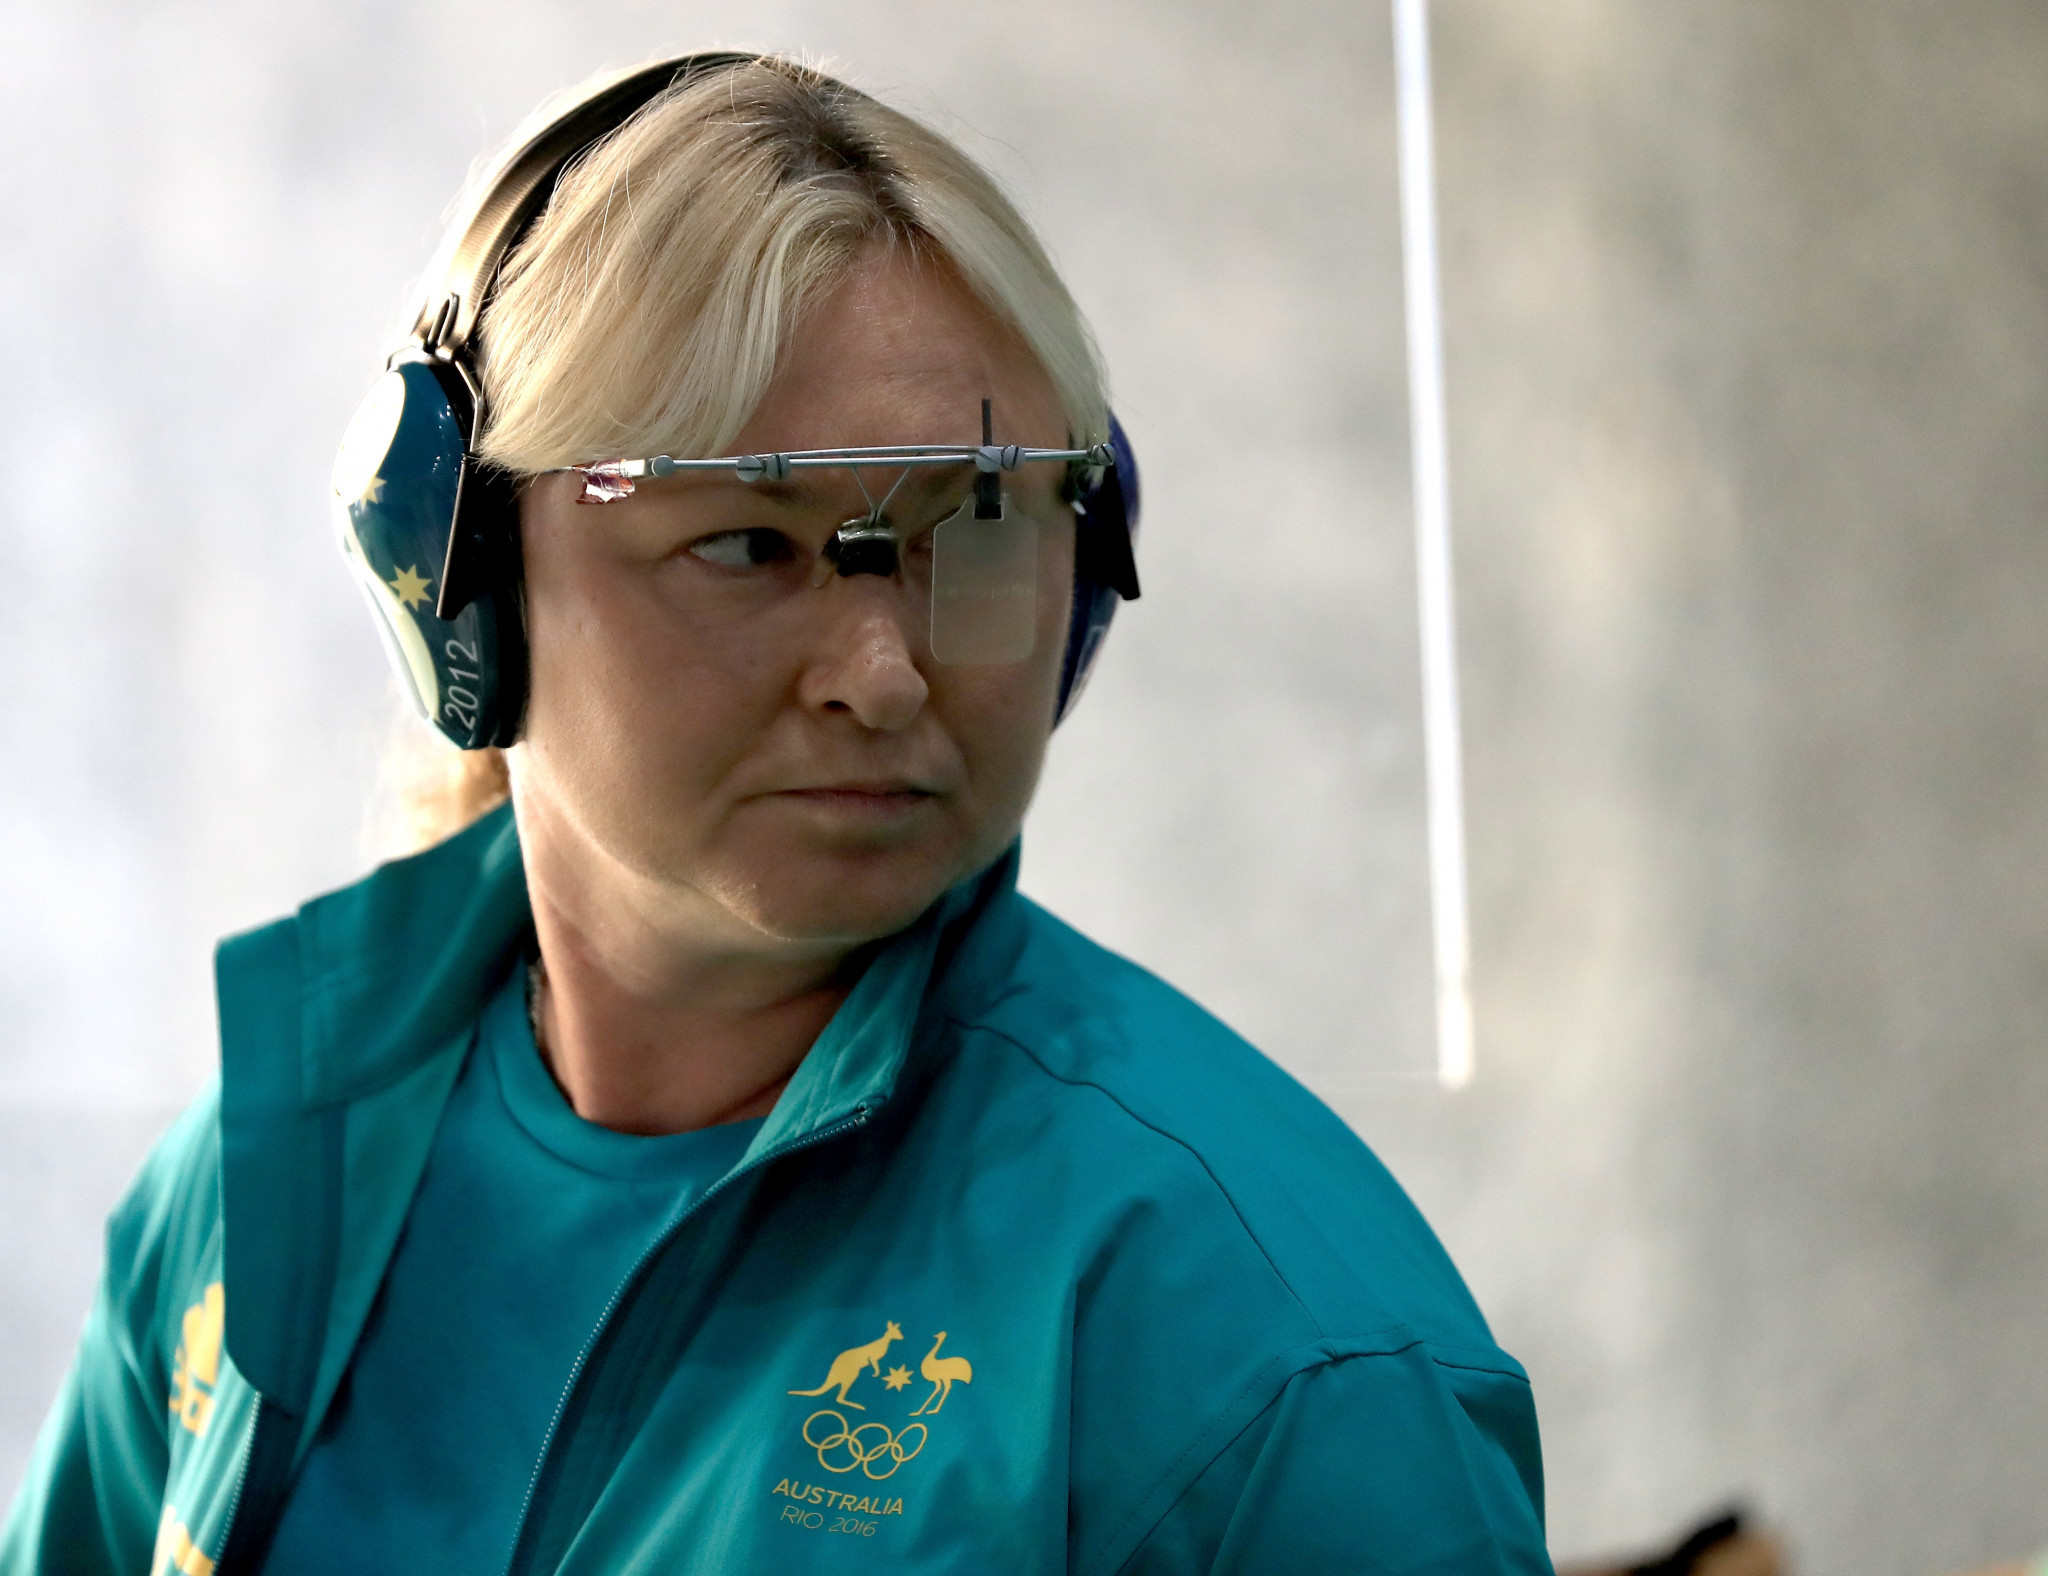 Belarusian-born Australian wins three gold medals at Oceania and Commonwealth Shooting Federations' Championships